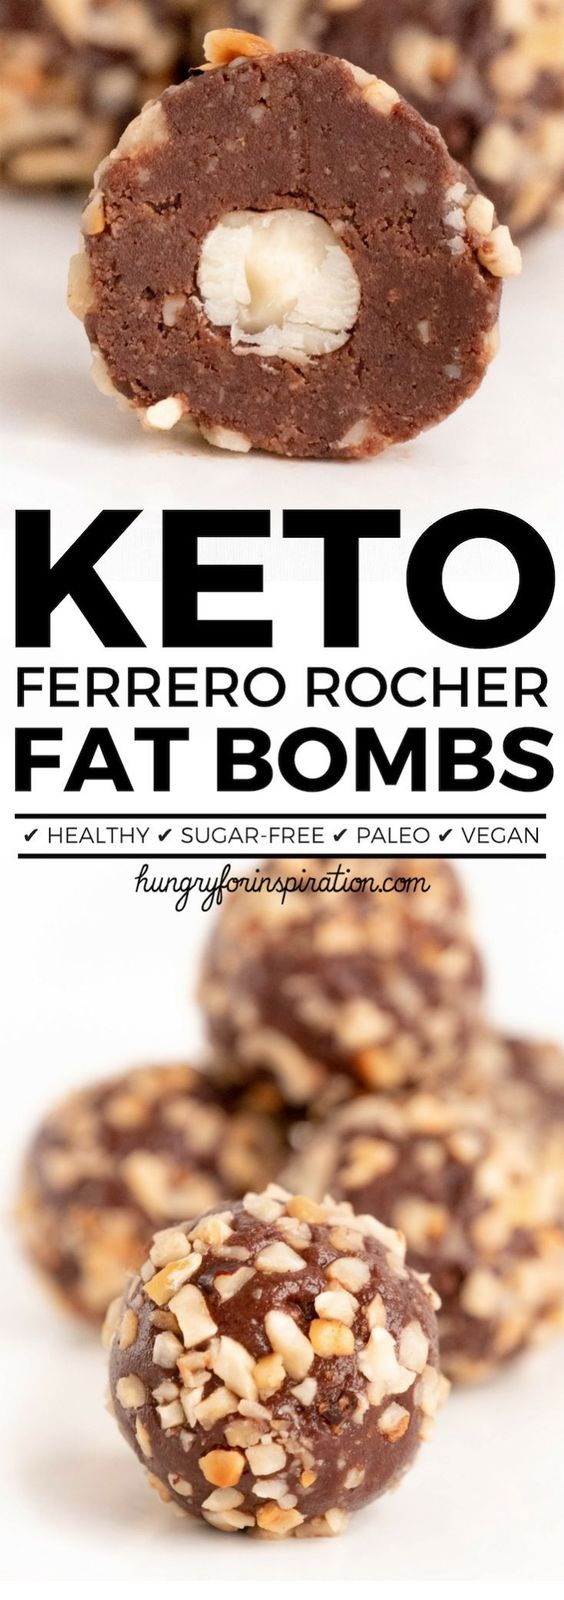 Ferrero Rocher Keto Fat Bombs